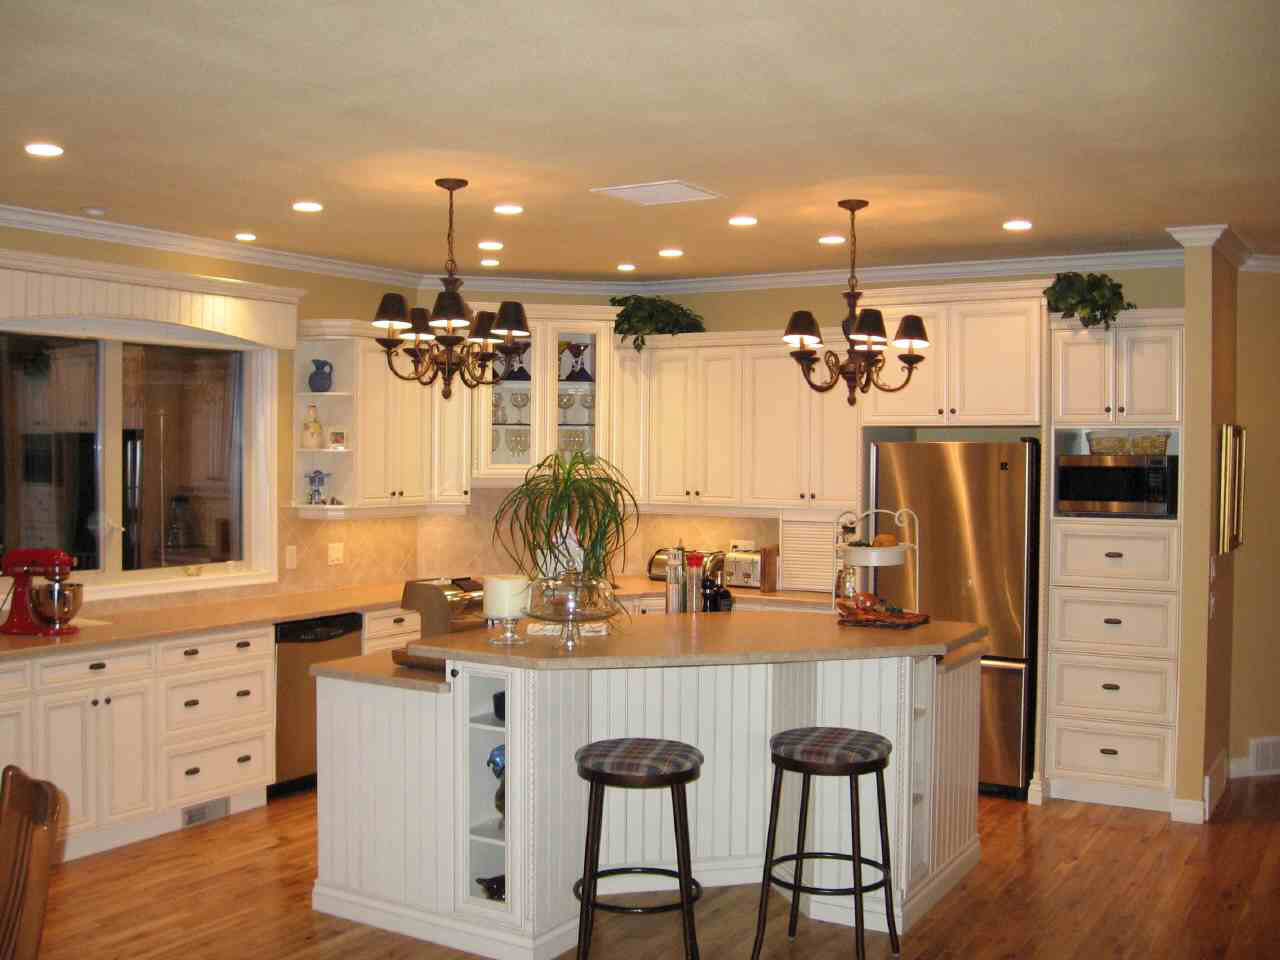 Kitchen Decor Peartreedesigns Beautiful Modern Kitchen Interiors